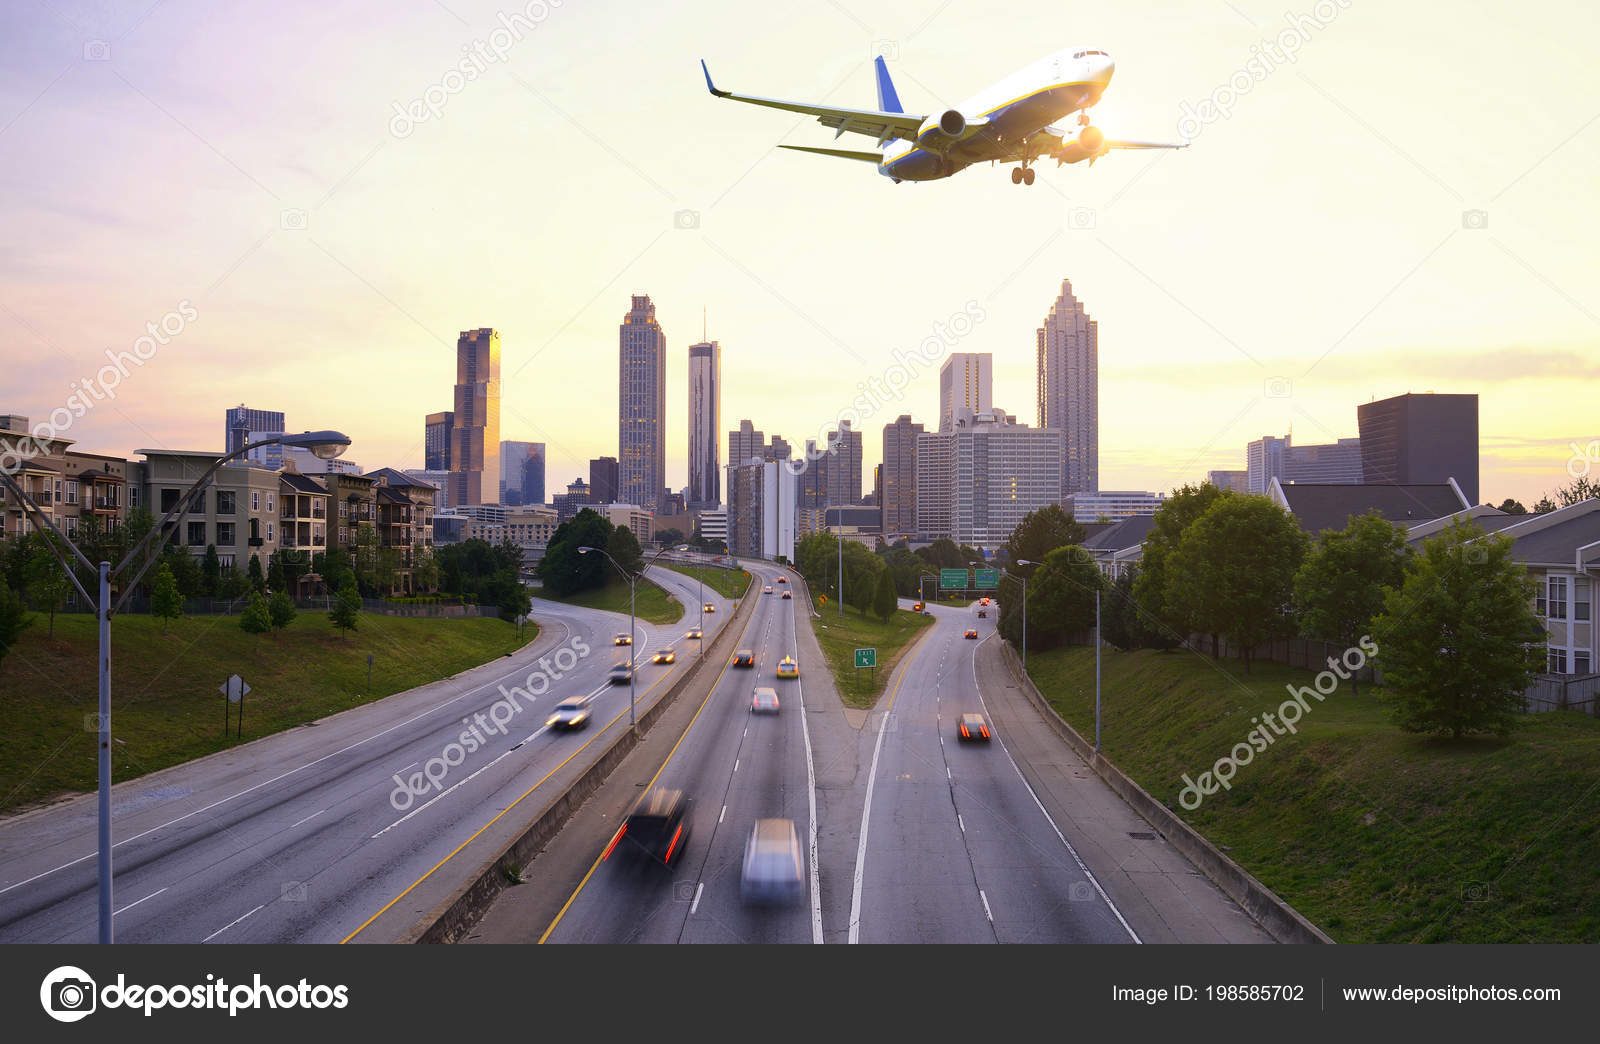 Airplane Flying Atlanta Skyline Georgia Usa Stock Photo C Katy89 198585702